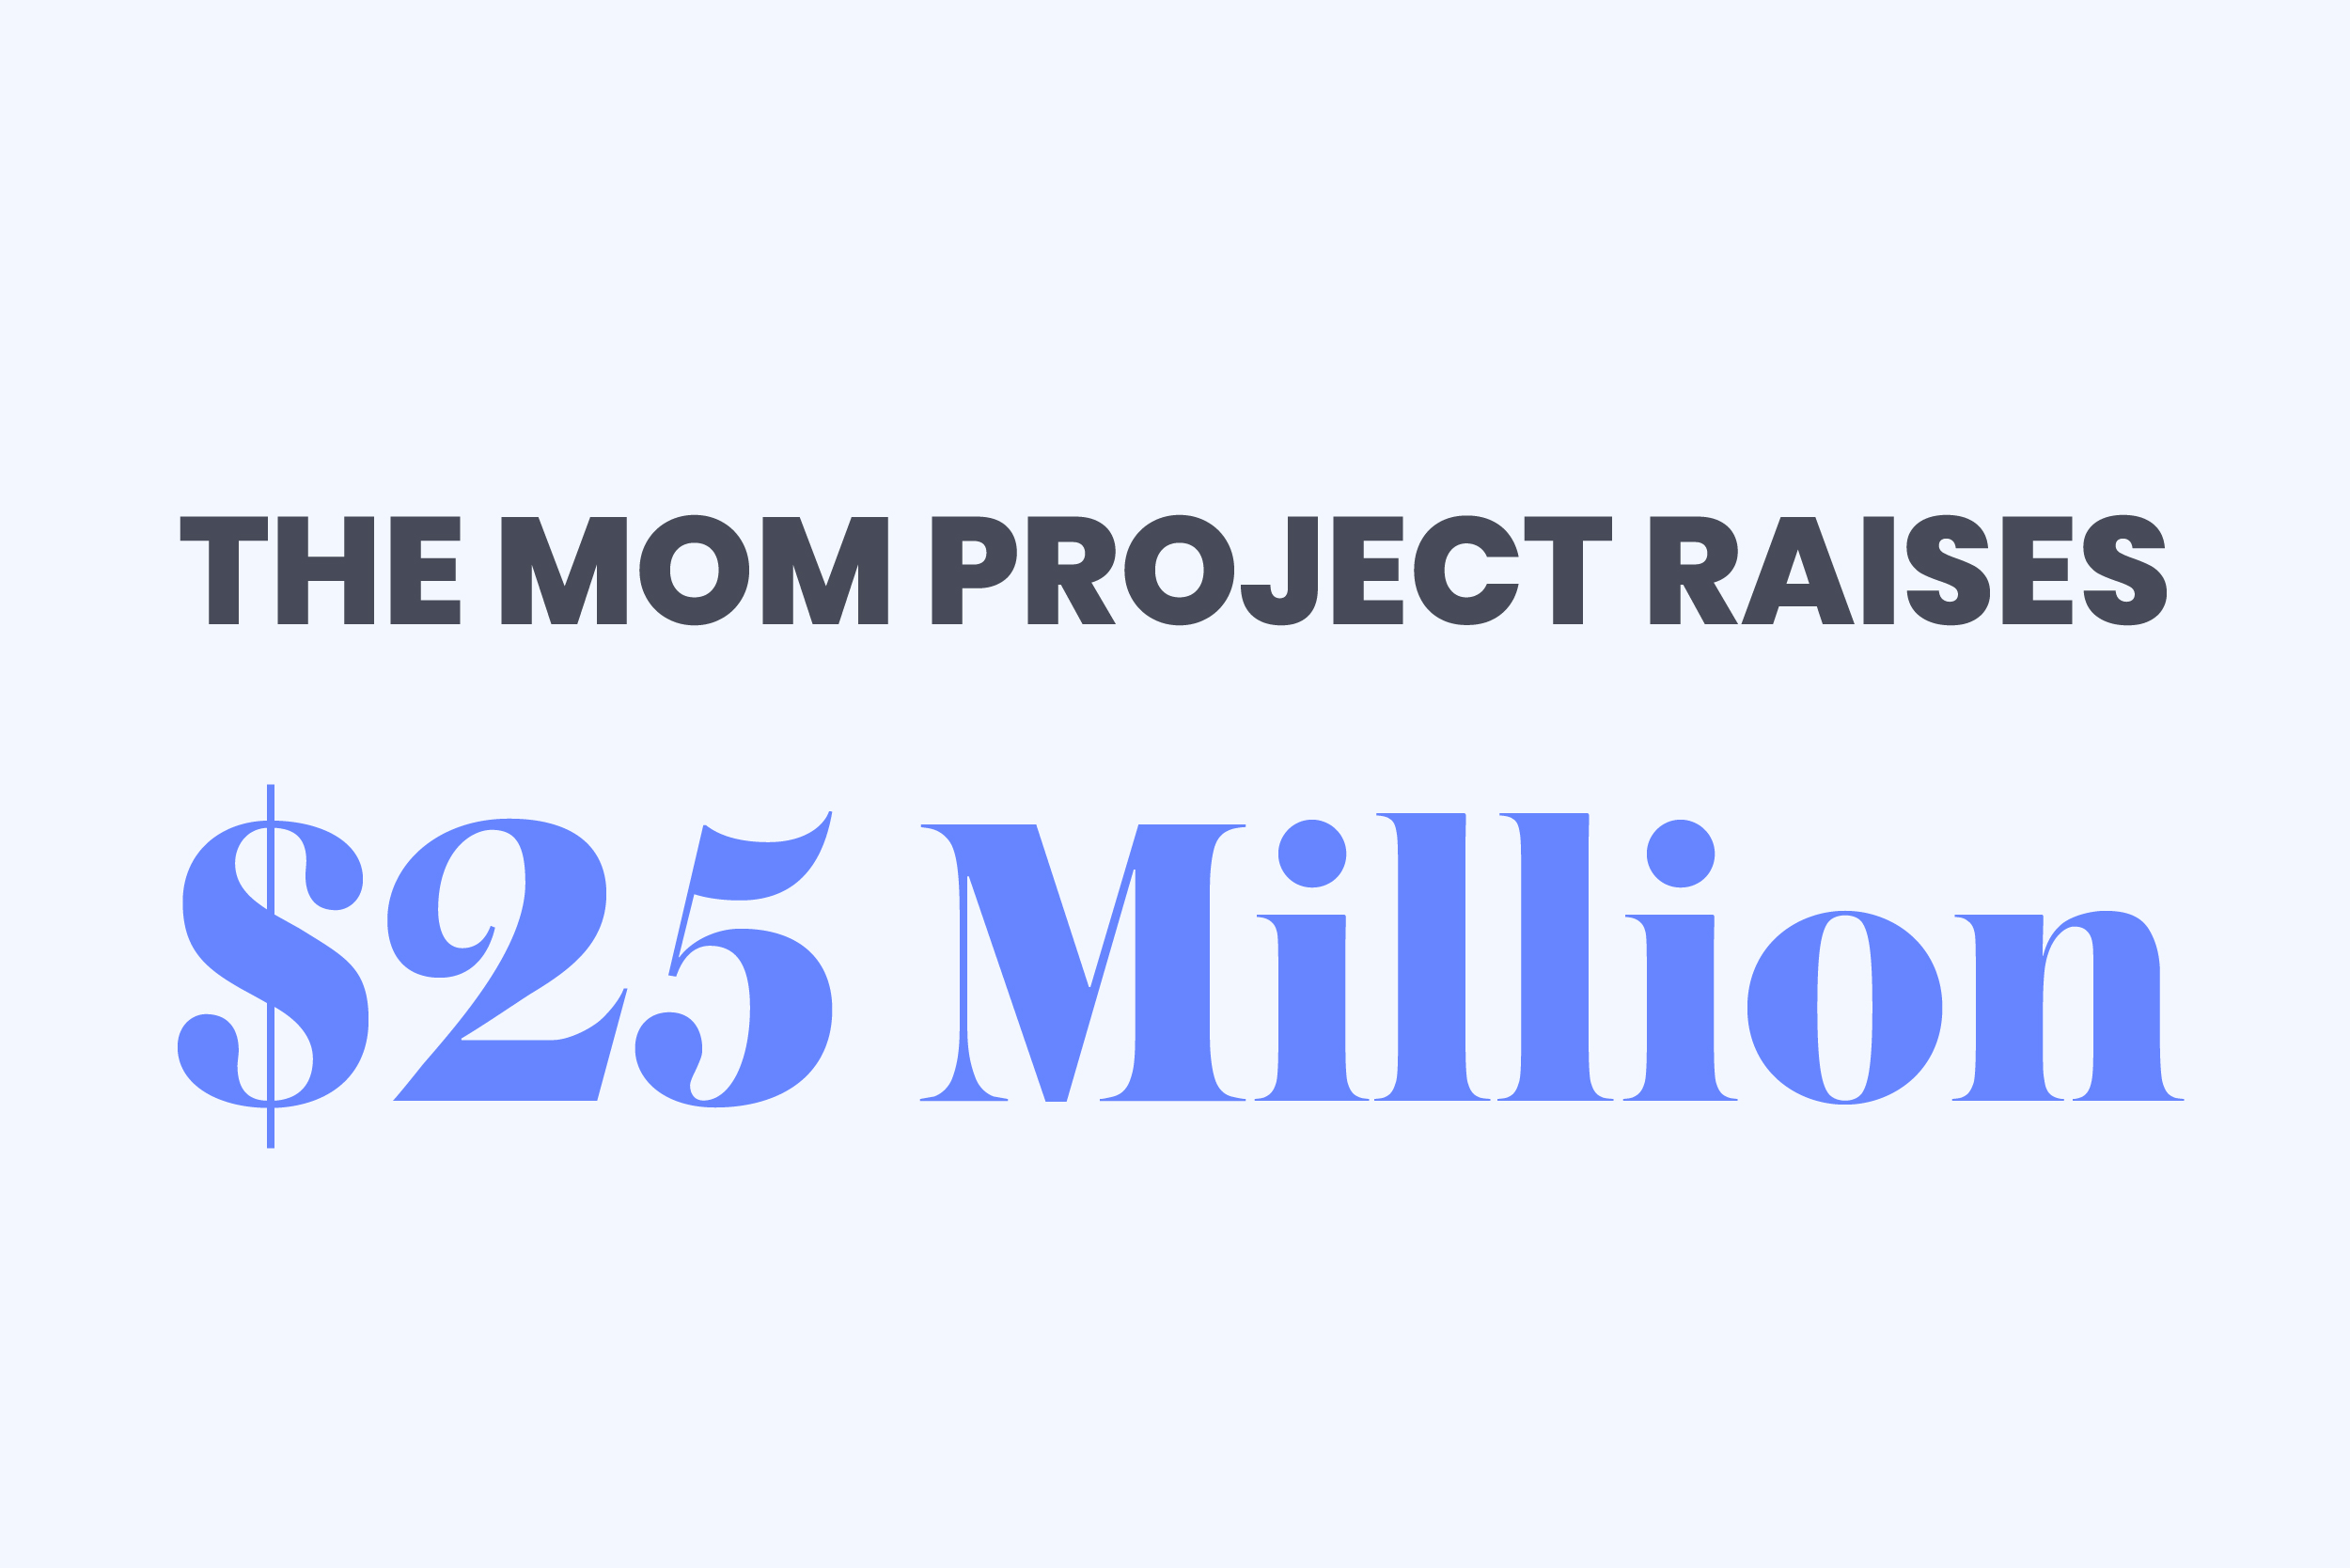 Investing More in Moms: The Mom Project Raises $25 Million